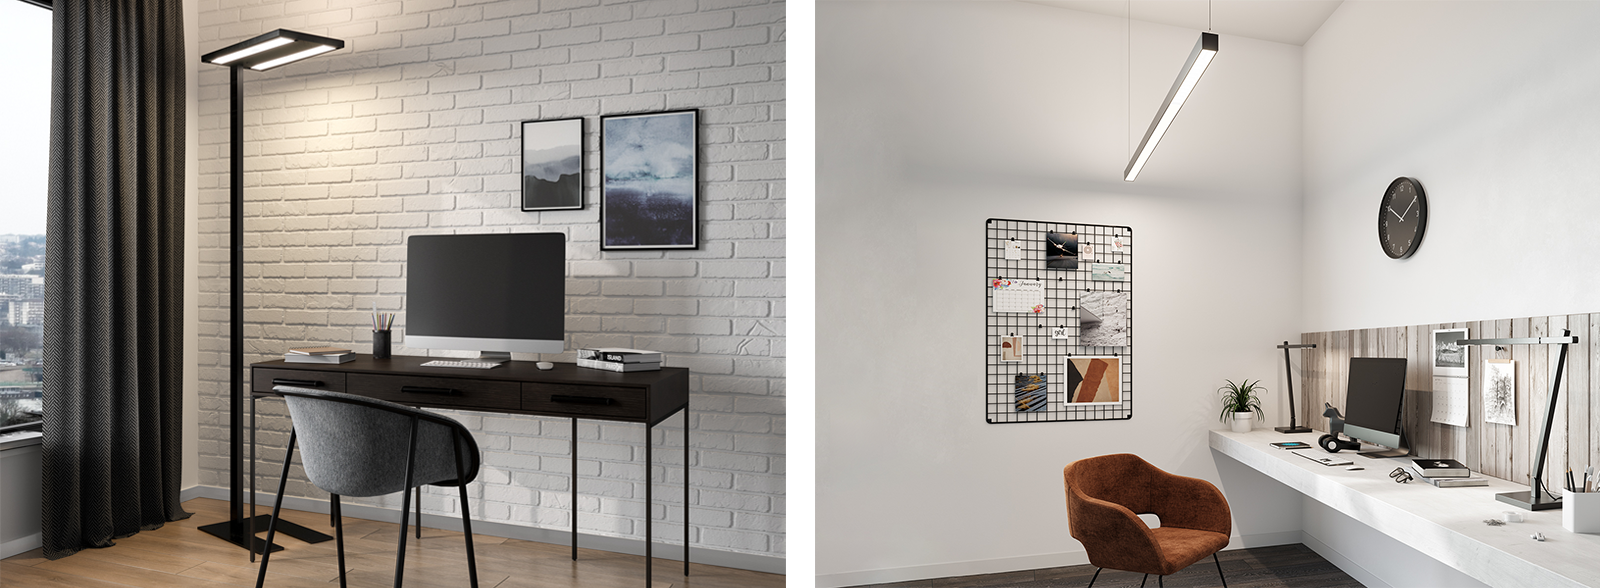 Two home-office images with byok lamps Campo, Linea and Squadrina